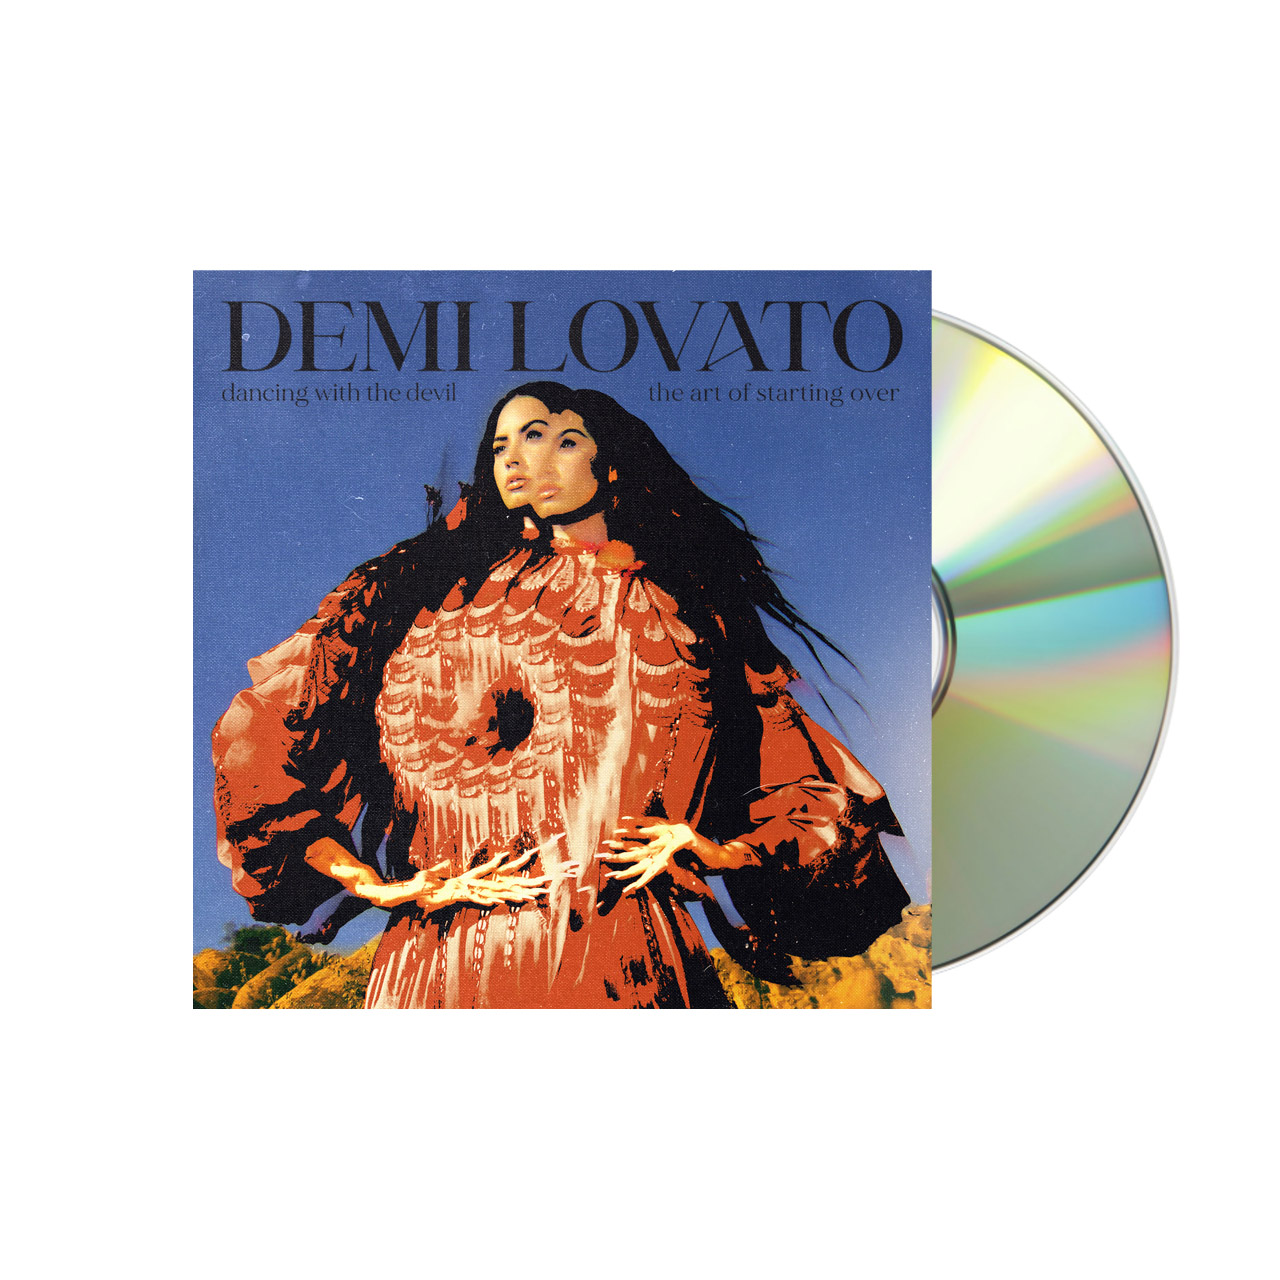 DEMI LOVATO Dancing With The Devil… The Art of Starting Over Cover 3 CD